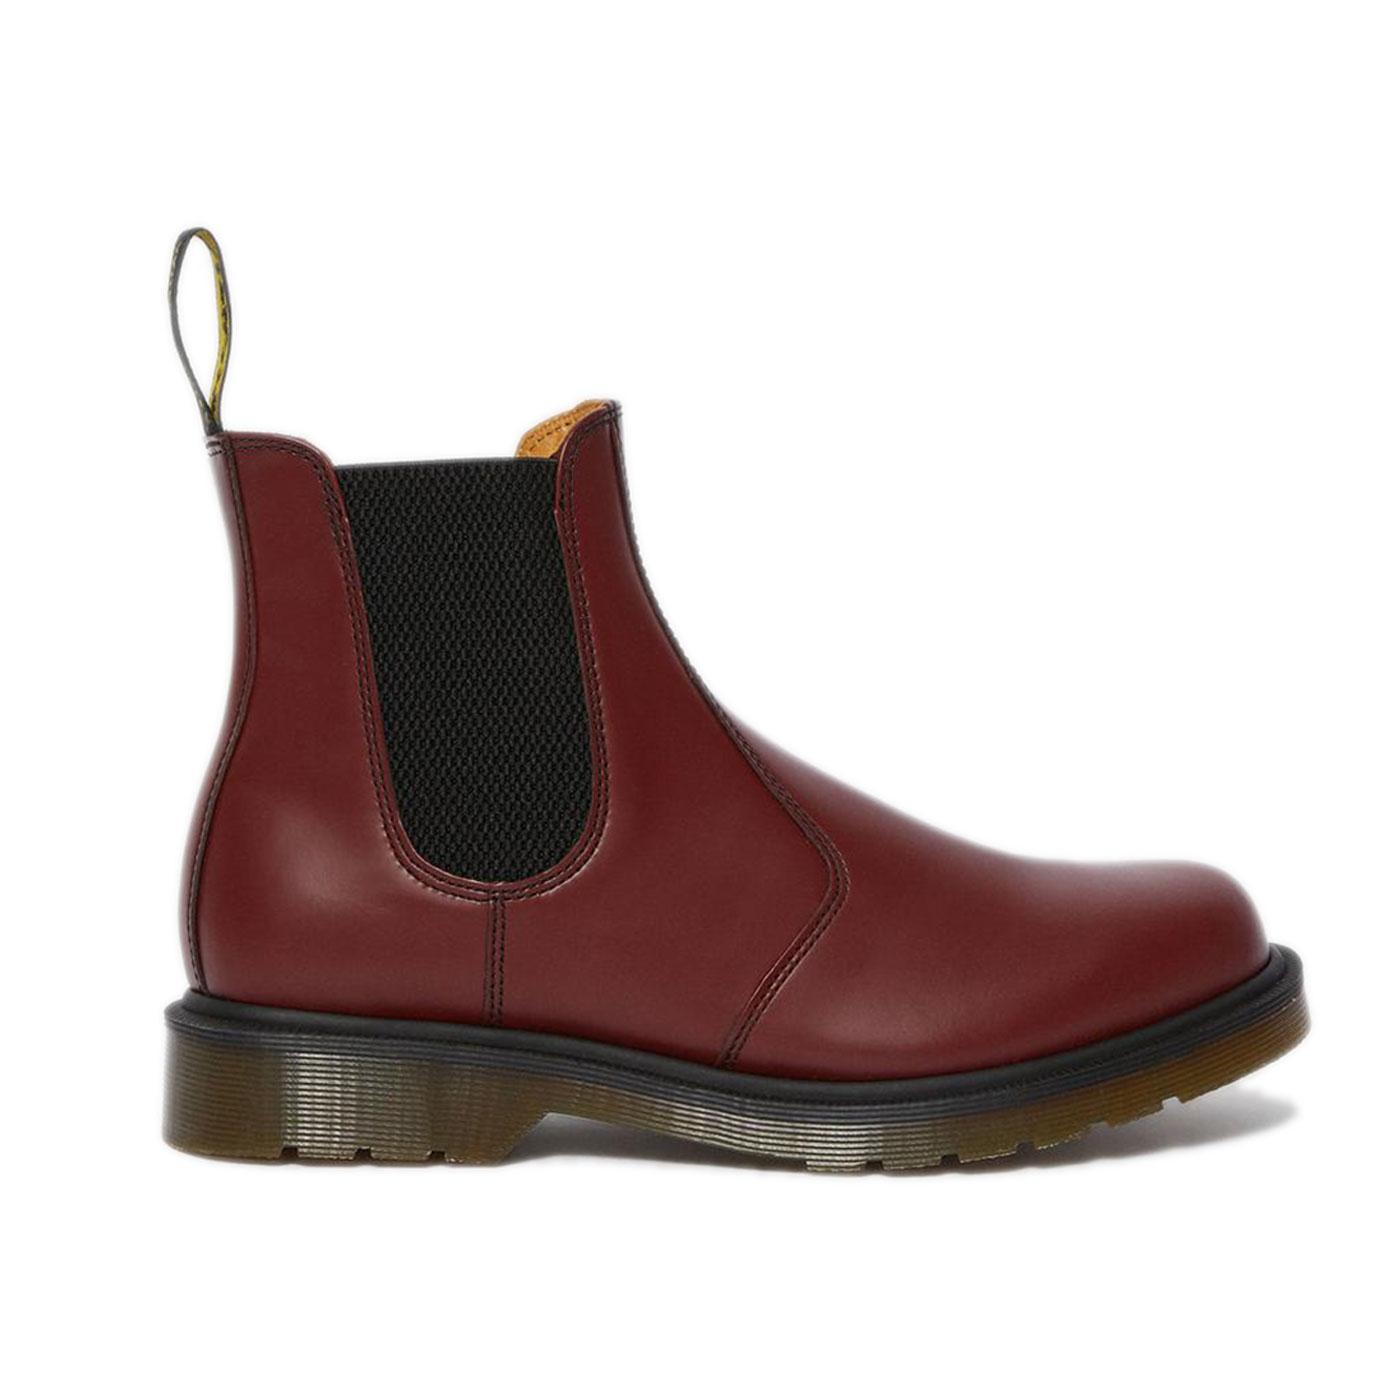 2976 Smooth DR MARTENS Men's Chelsea Boots CR